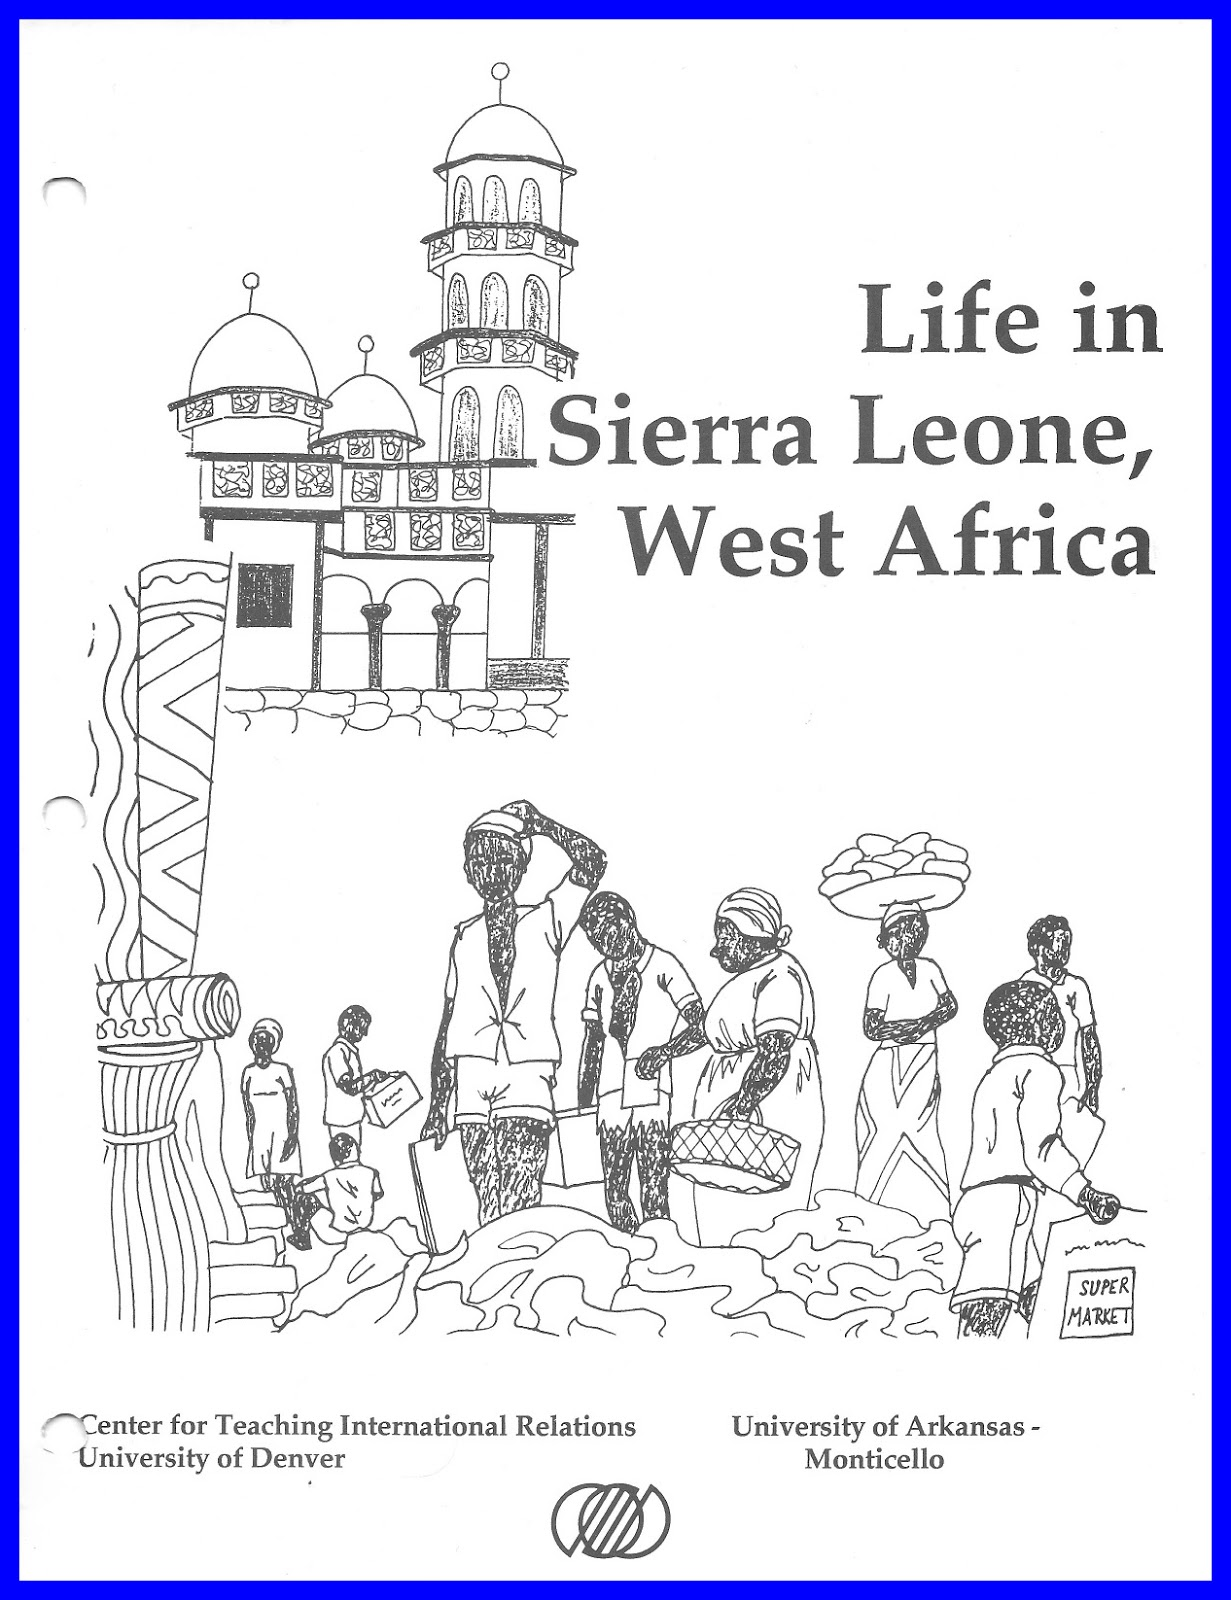 Find clip art and writing prompts in an African Studies freebie sampler by The ESL Nexus